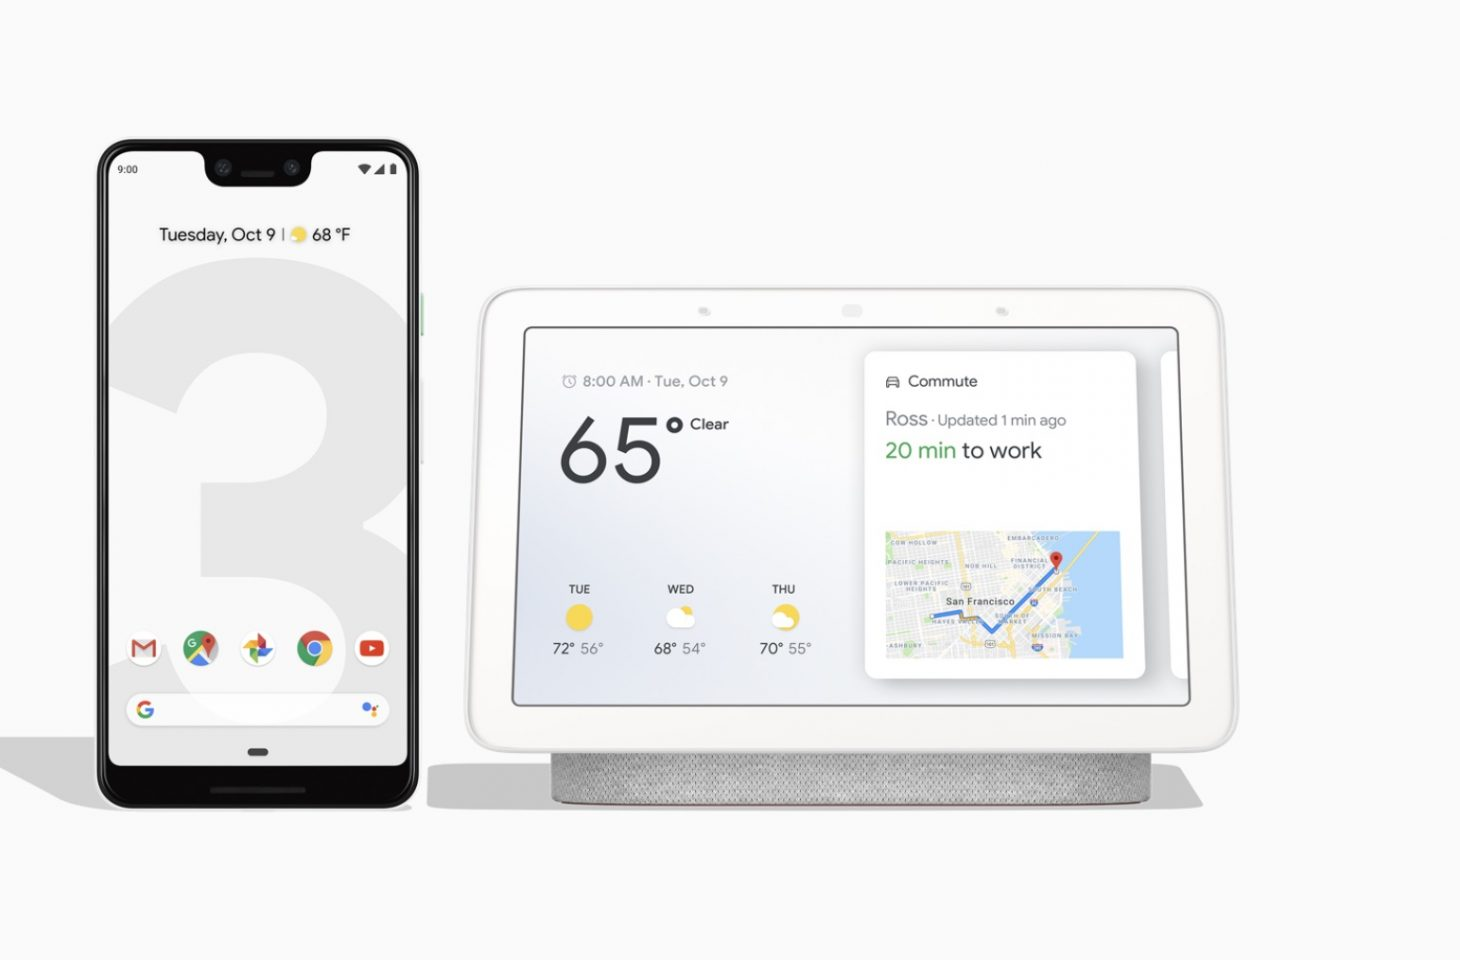 Pixel 3 and Home Hub